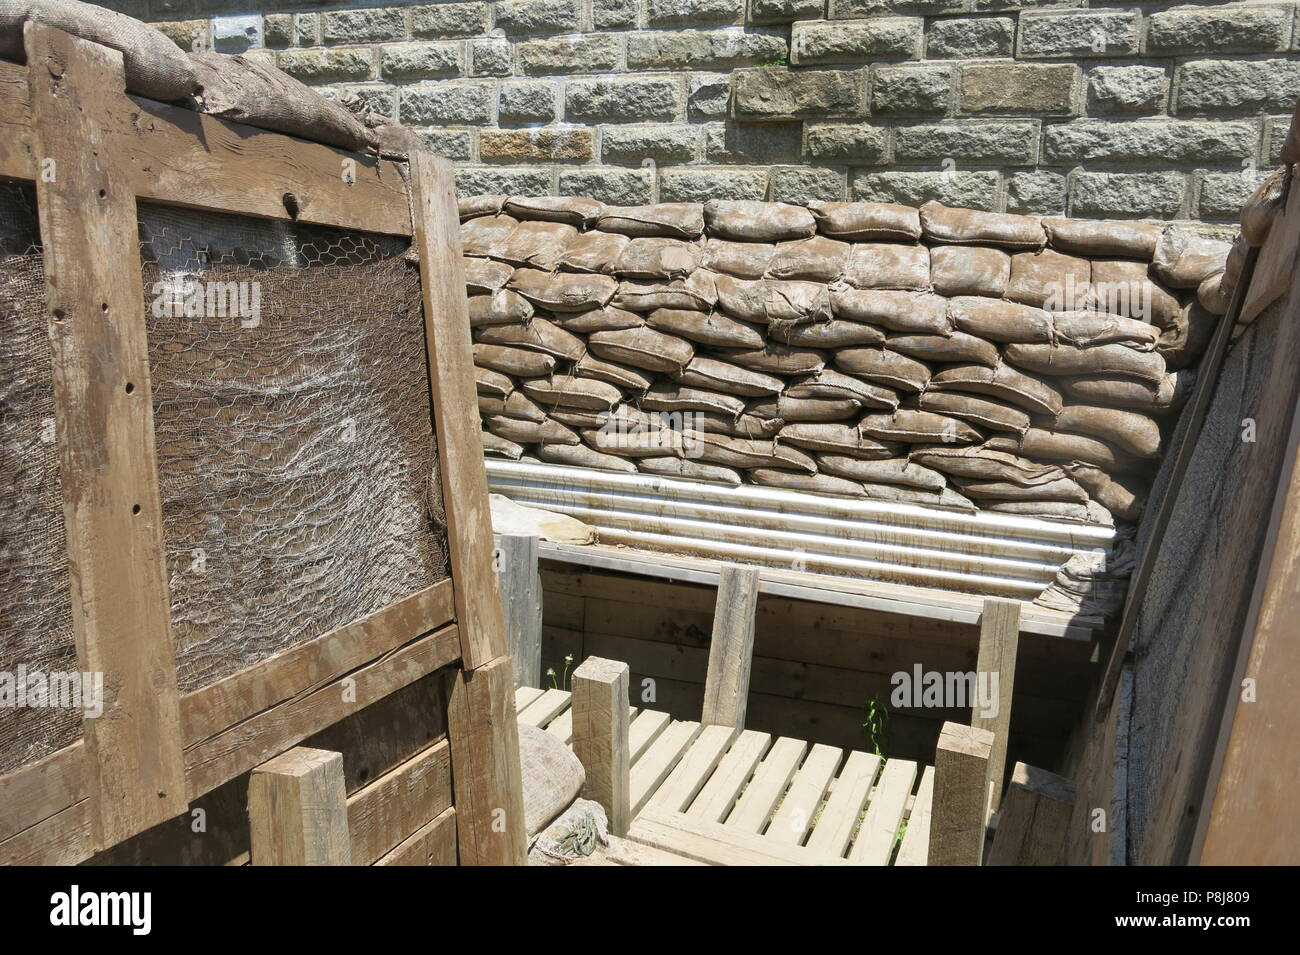 The First World War trench exhibit at Halifax Citadel National Historic Site allows you a realistic view of trench construction and living conditions - Stock Image